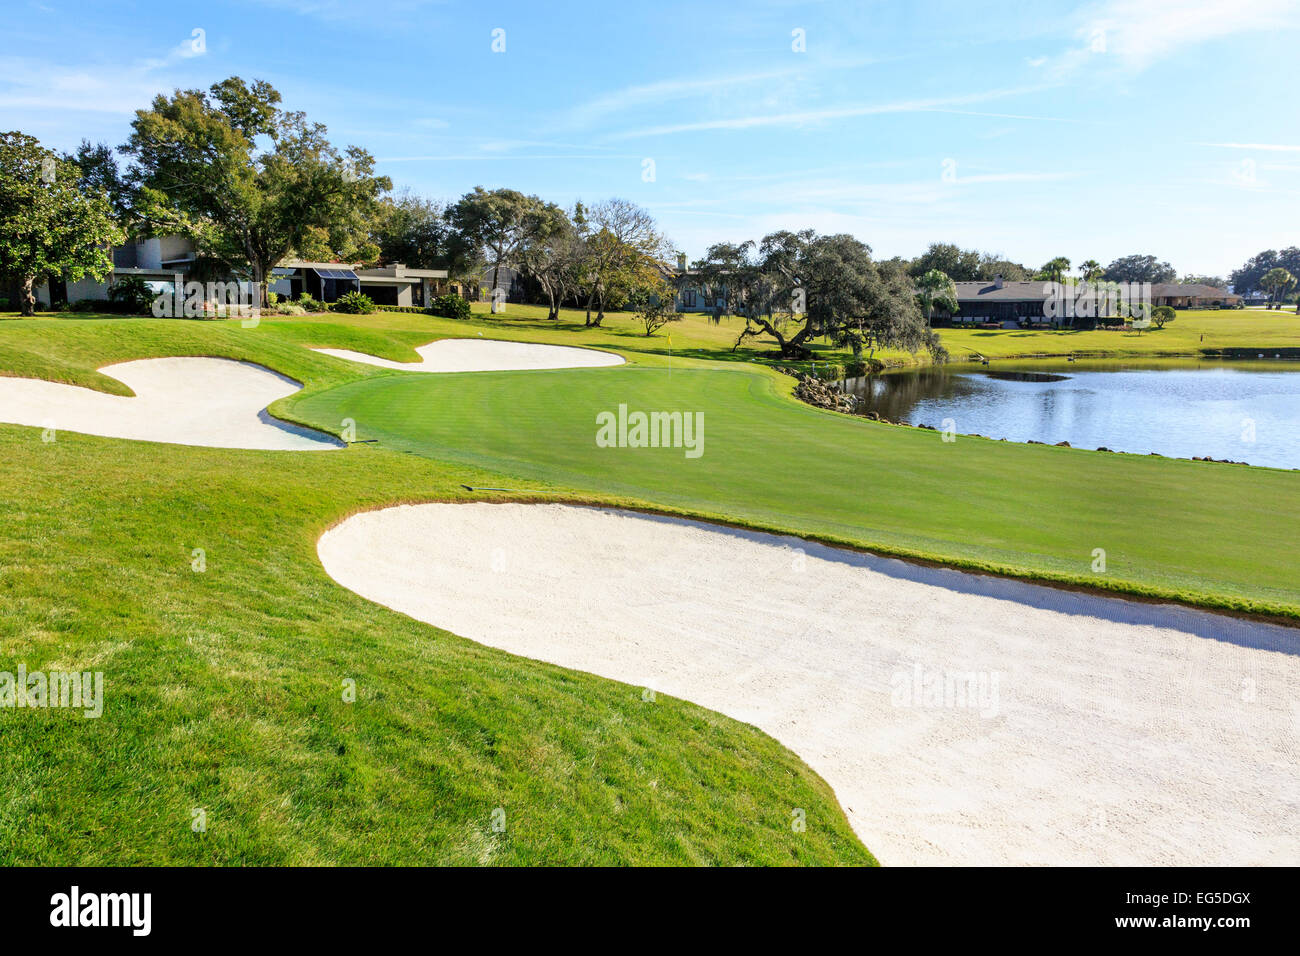 Iconic 18th green at Arnold Palmers Bay Hill Golf Course, Orlando, Florida, America - Stock Image